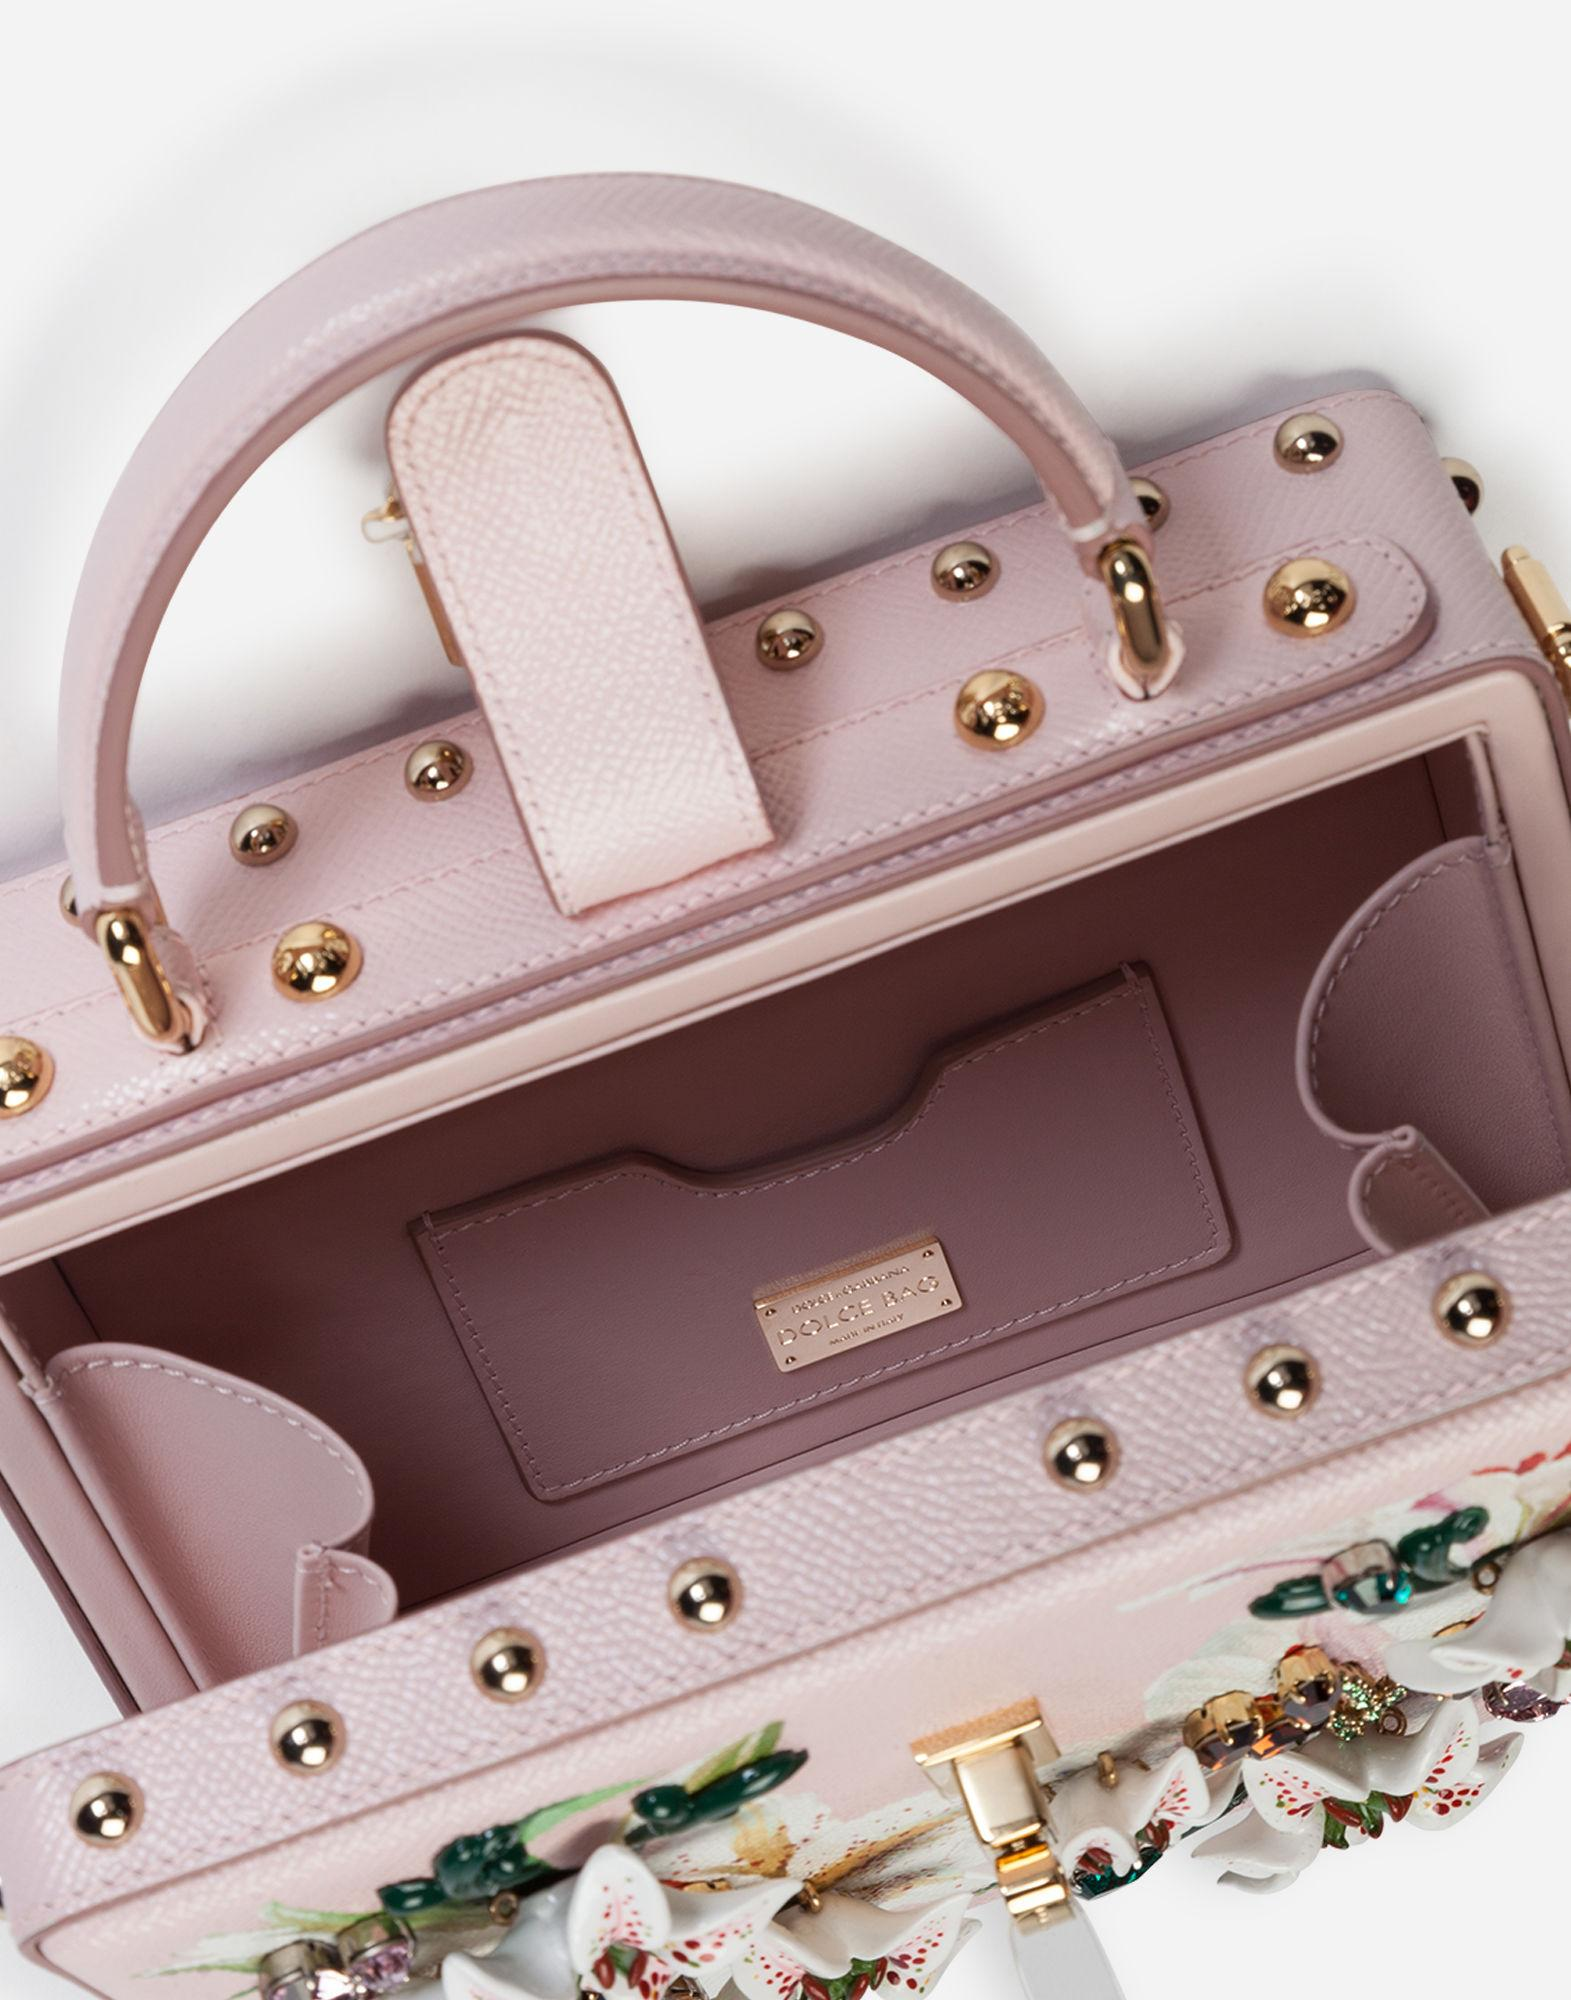 29a90be53e Dolce & Gabbana Dolce Box Bag In Lily-print Dauphine Calfskin With  Embroidery - Lyst